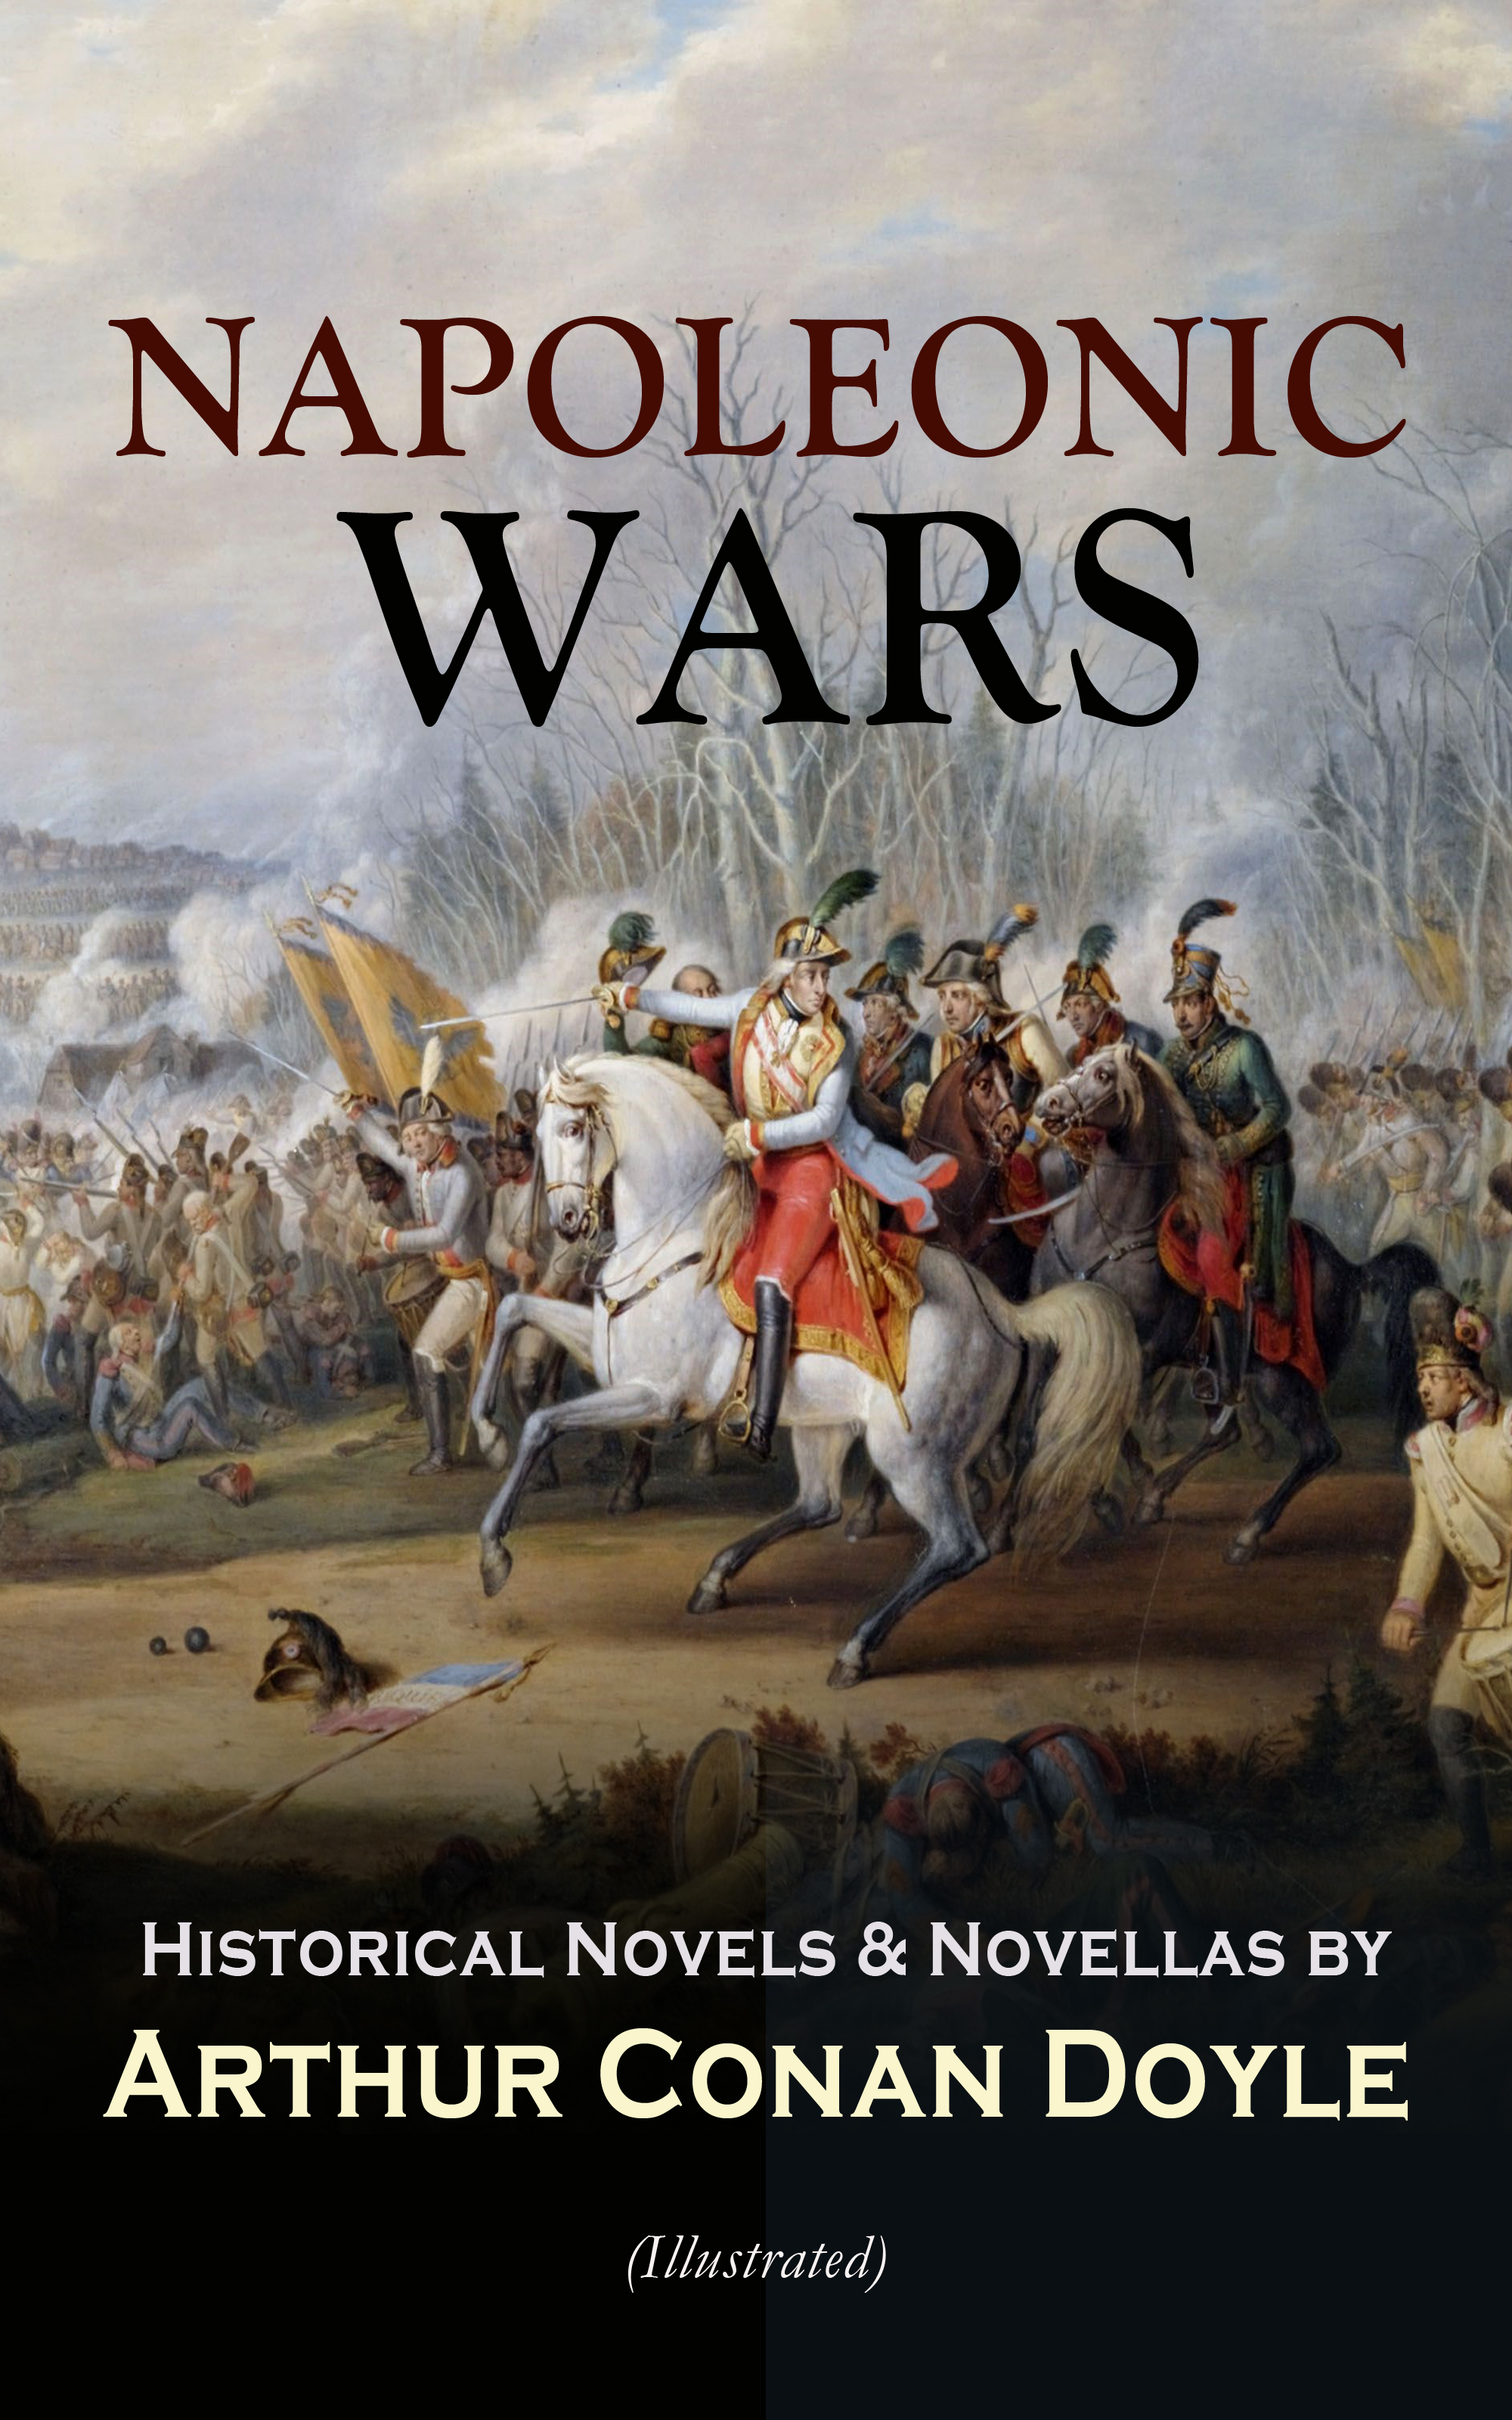 Arthur Conan Doyle NAPOLEONIC WARS - Historical Novels & Novellas by Arthur Conan Doyle (Illustrated) цена и фото